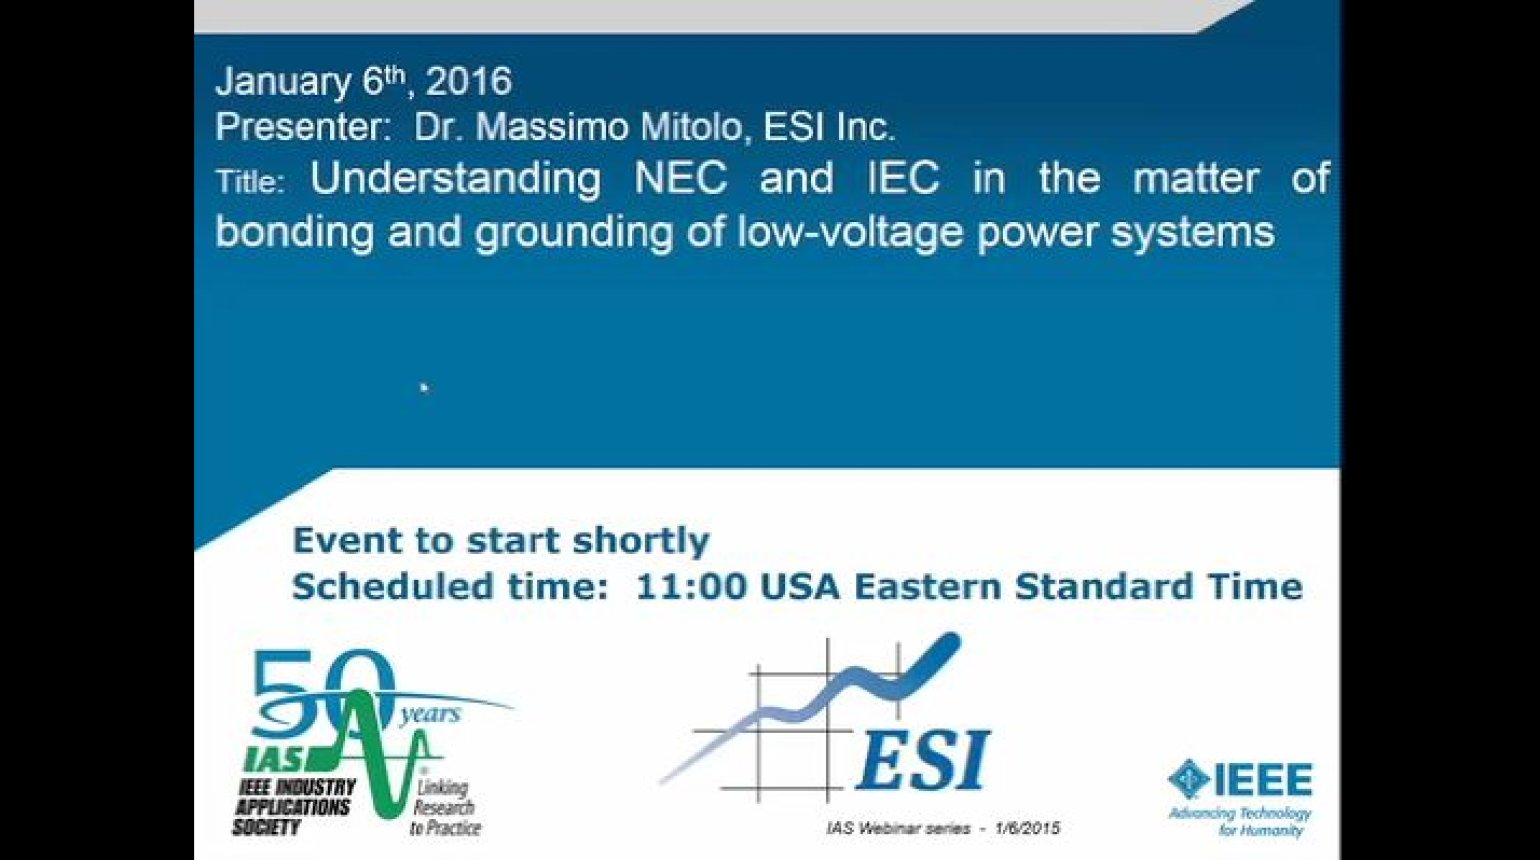 IAS Webinar Series -Understanding NEC and IEC in the Matter of Bonding and Grounding of Low-Voltage Power Systems